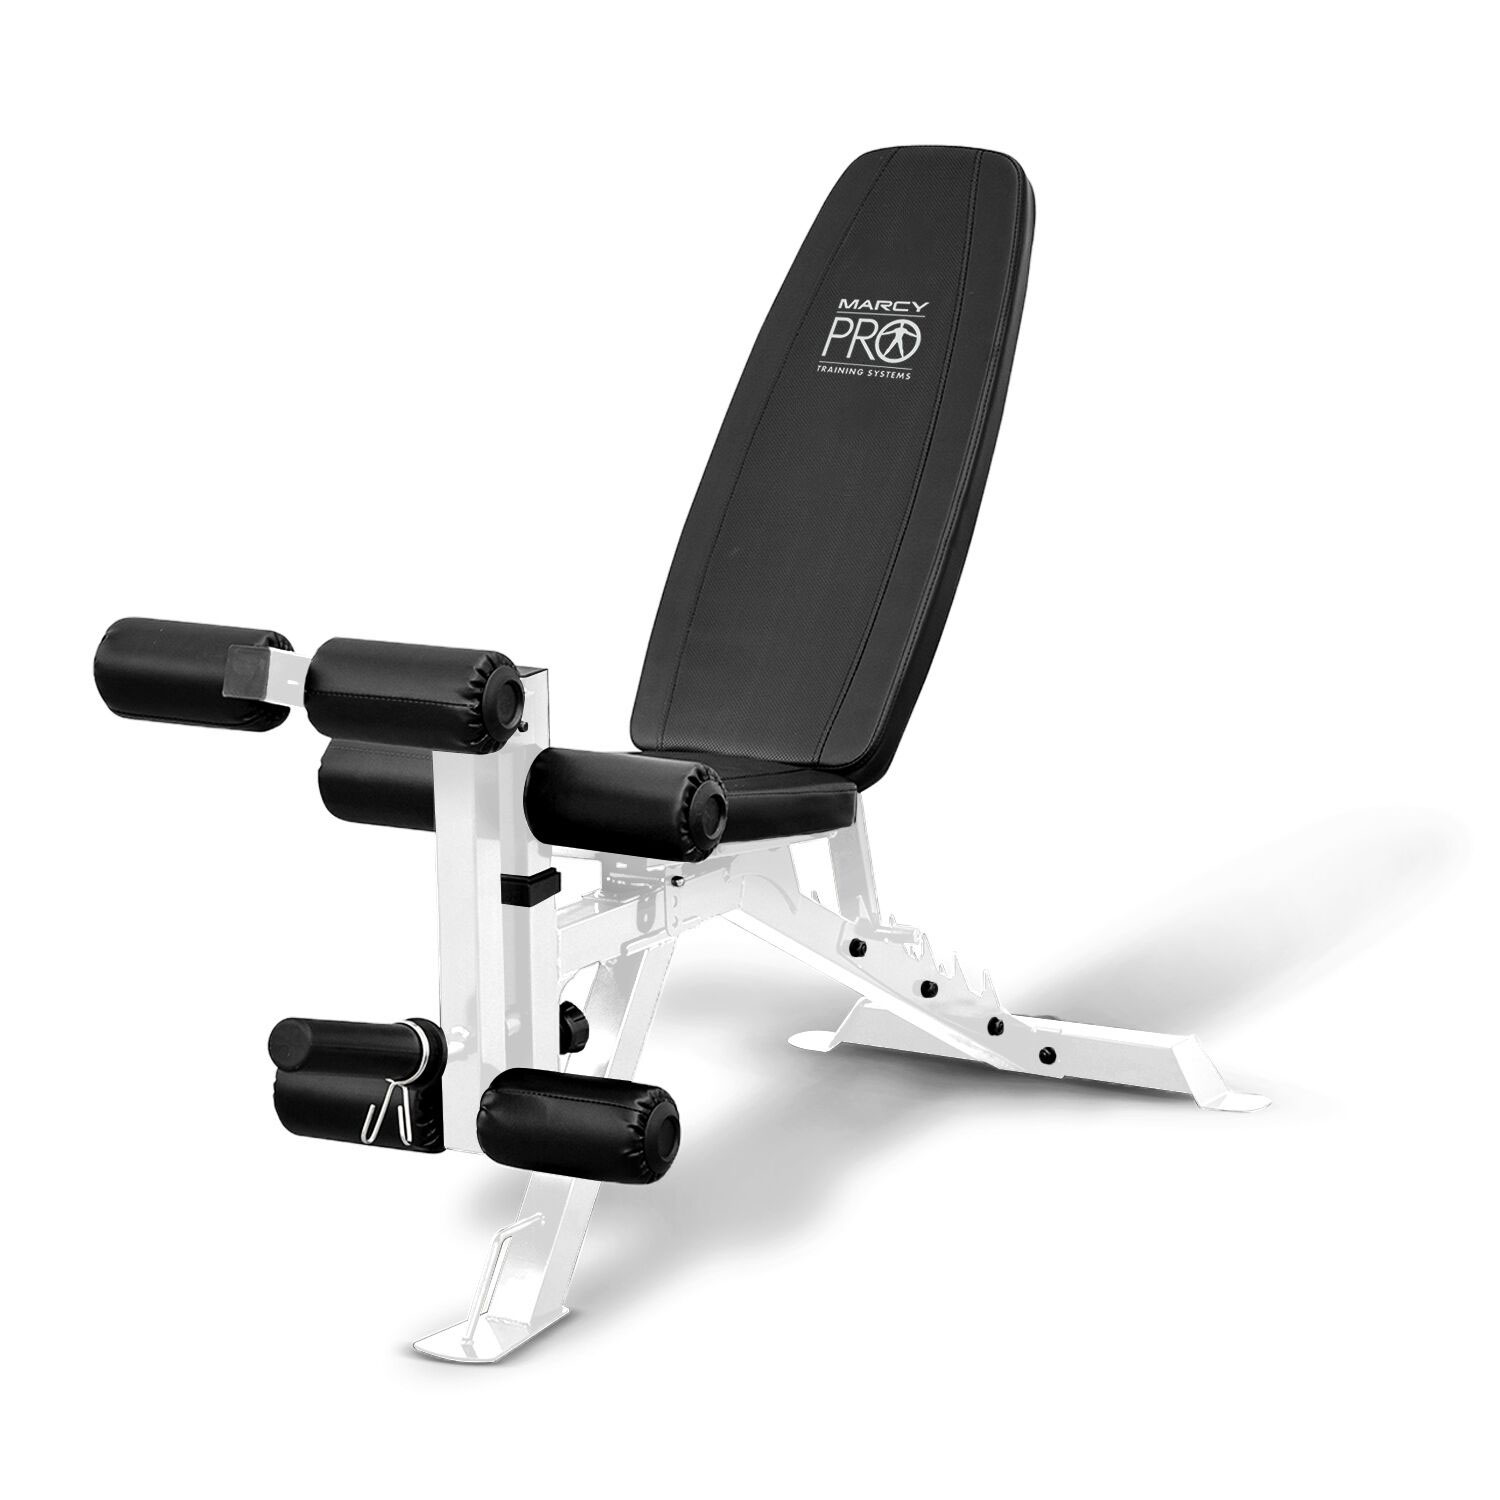 Charming Impex PM 5788 FID Powder Coated Steel Home Gym Adjustable Weight Bench,  White